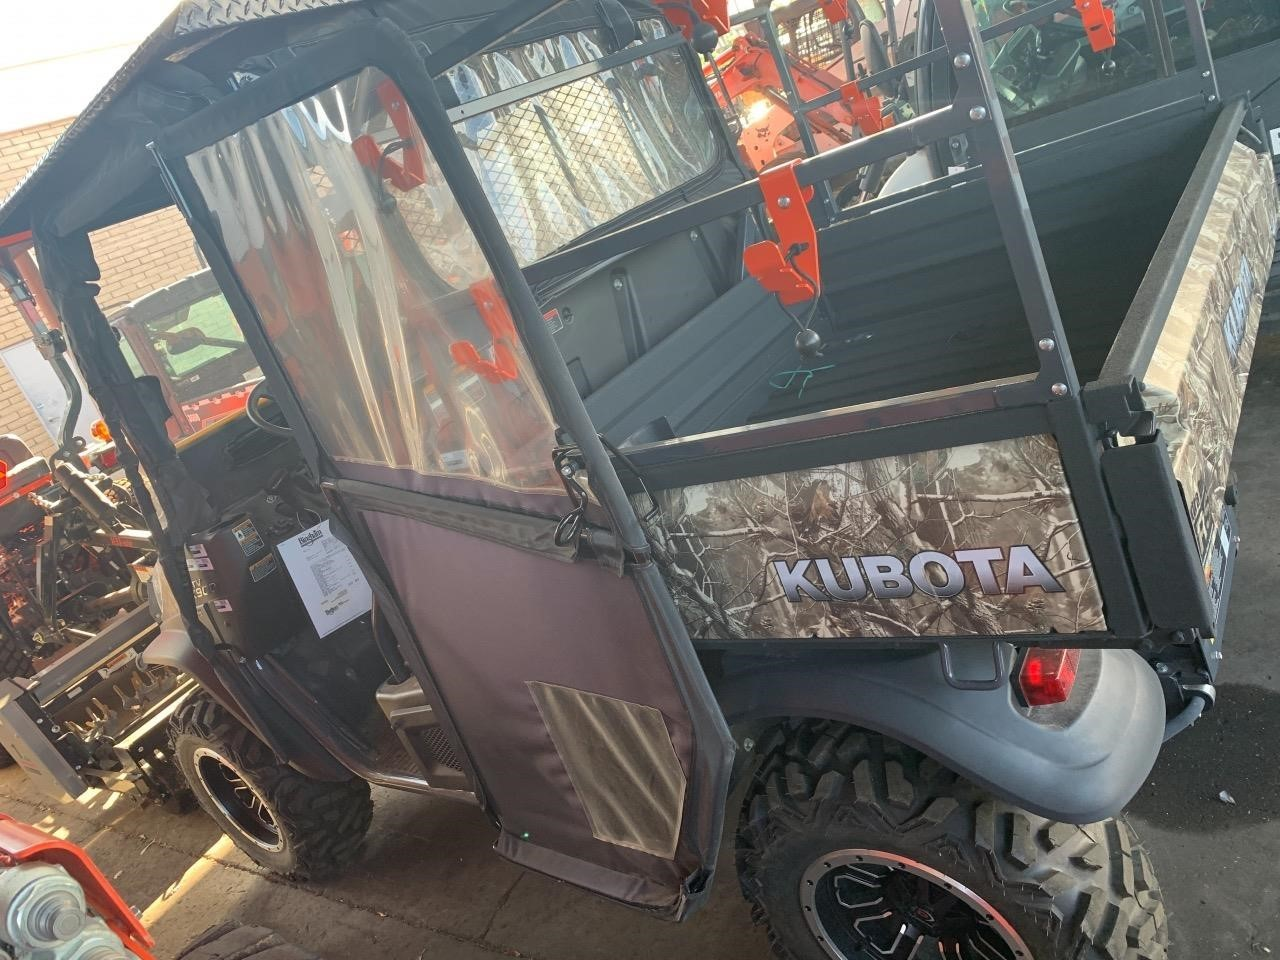 2016 Kubota RTVX900R ATVs and Utility Vehicle